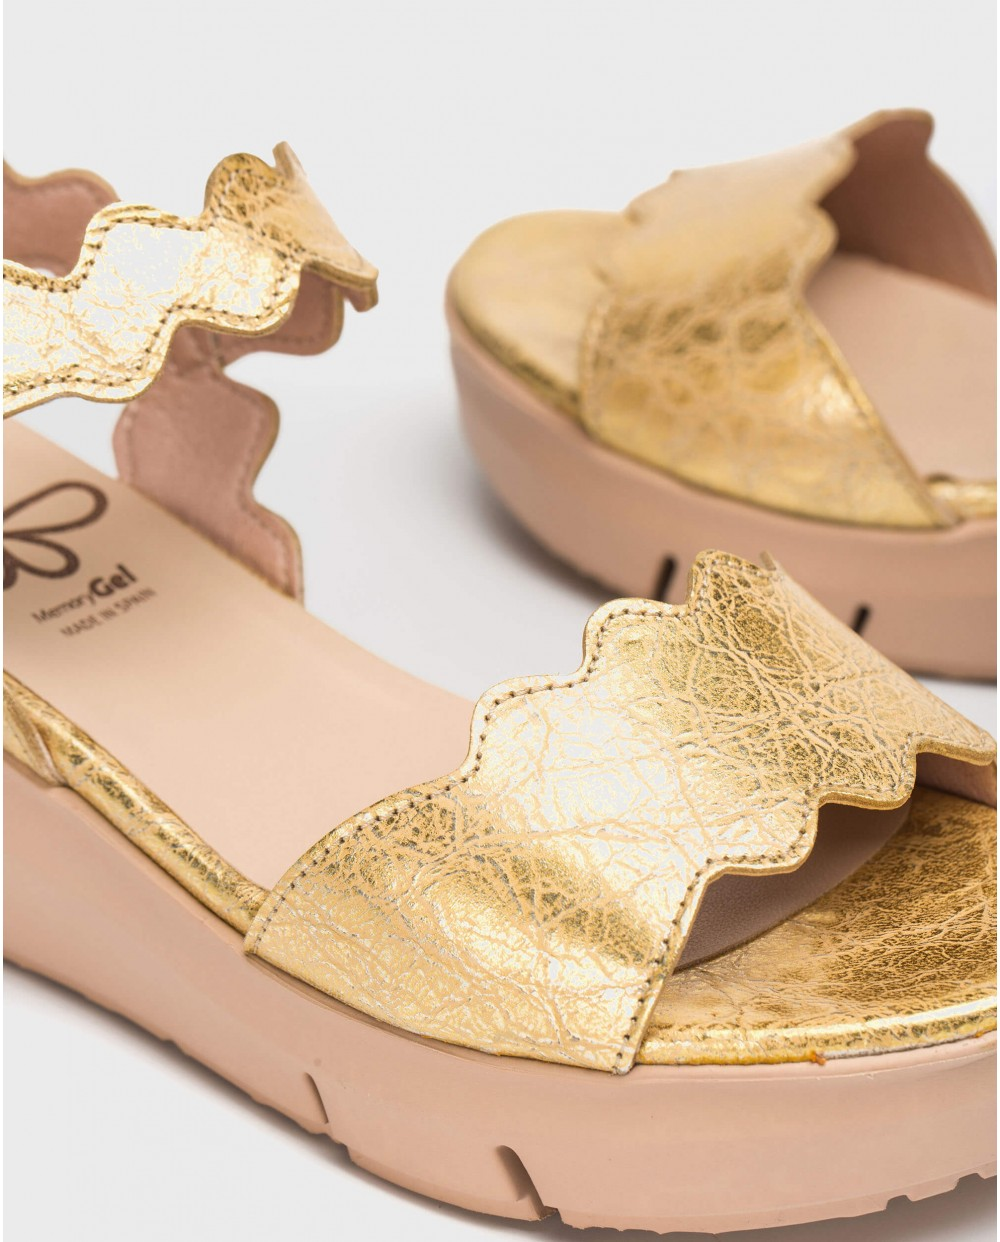 Wonders-Sandals-Fantasy leather sandal with zigzag